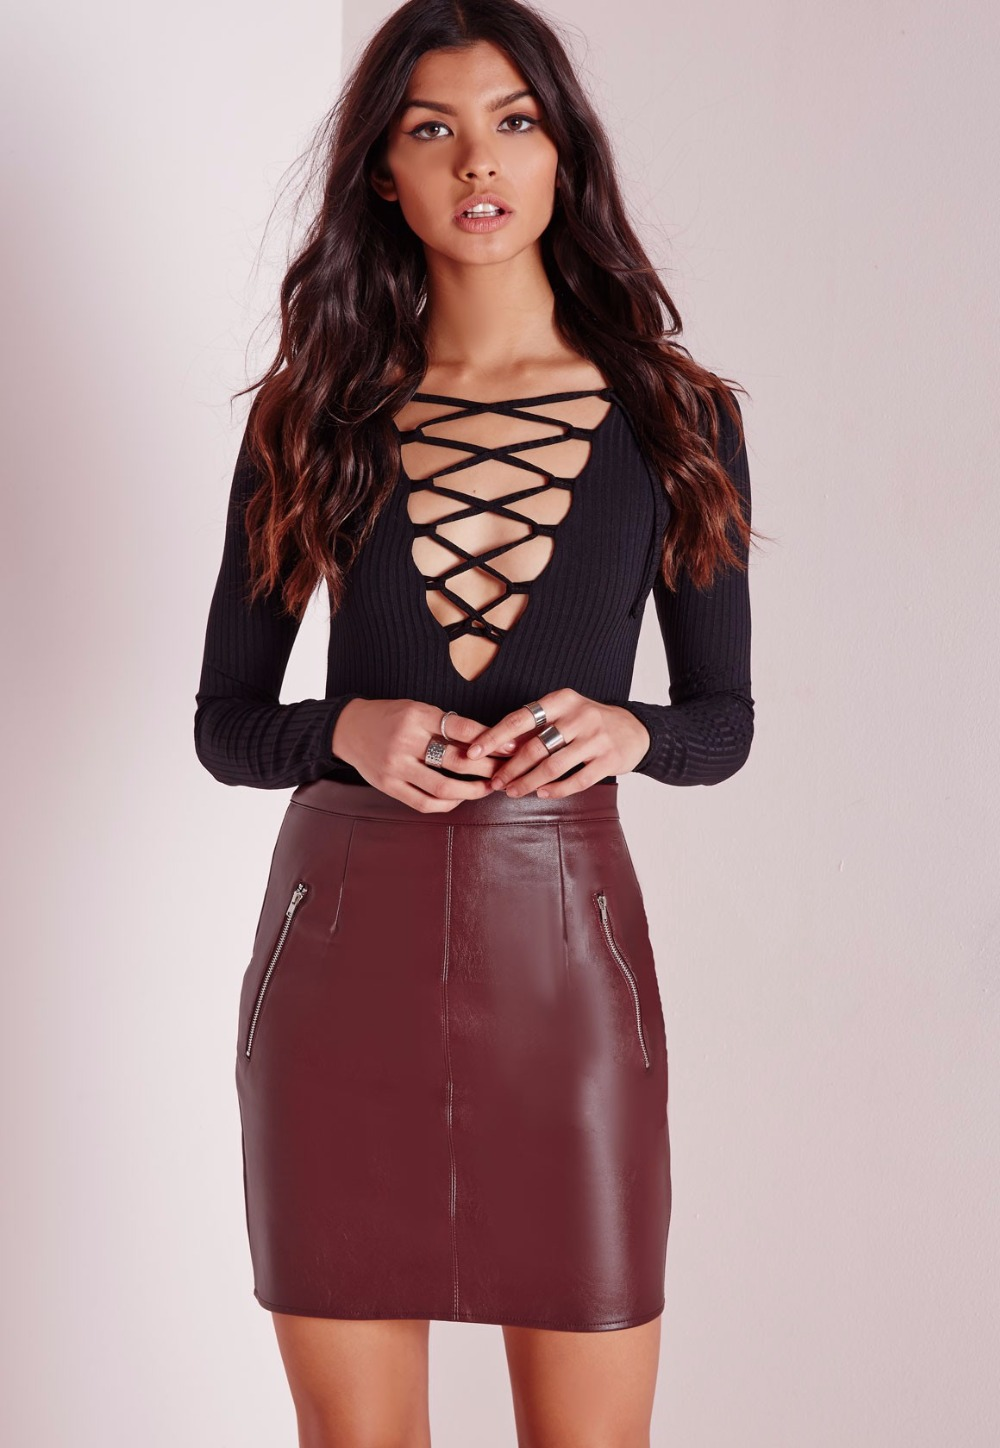 Leather skirt at the office – Modern skirts blog for you